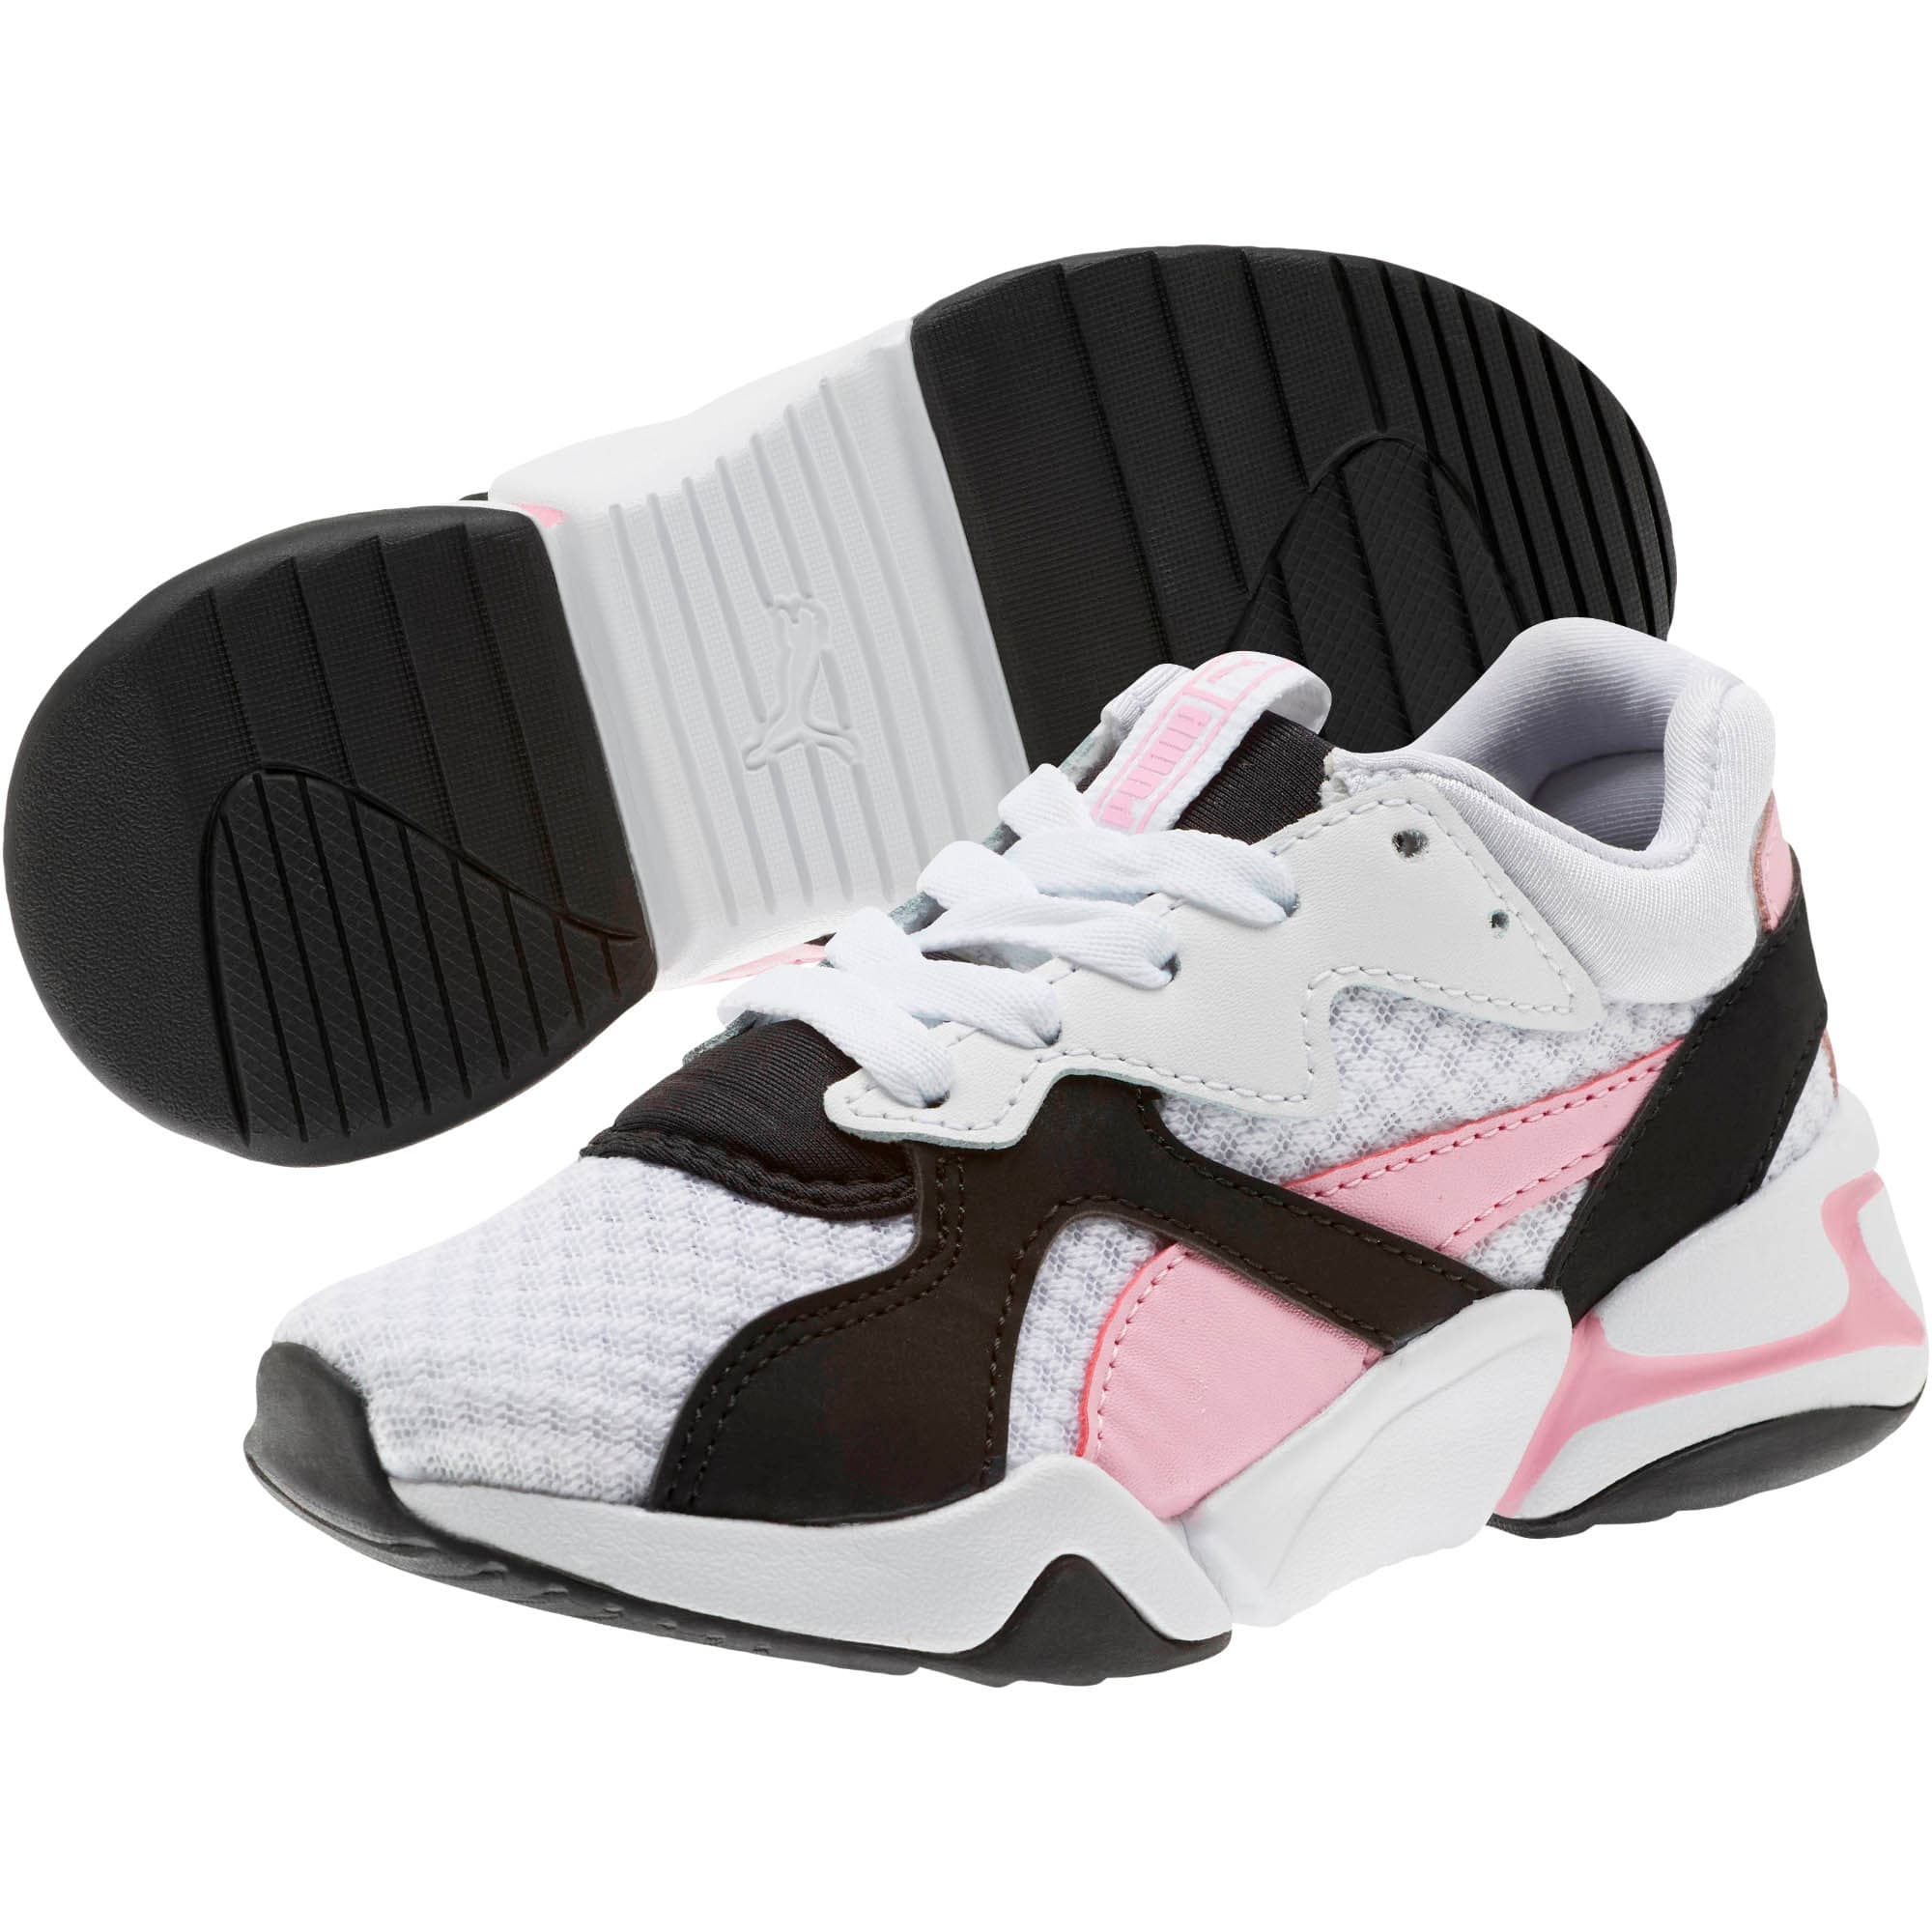 Thumbnail 2 of Nova '90s Bloc Sneakers PS, Puma Black-Puma White, medium